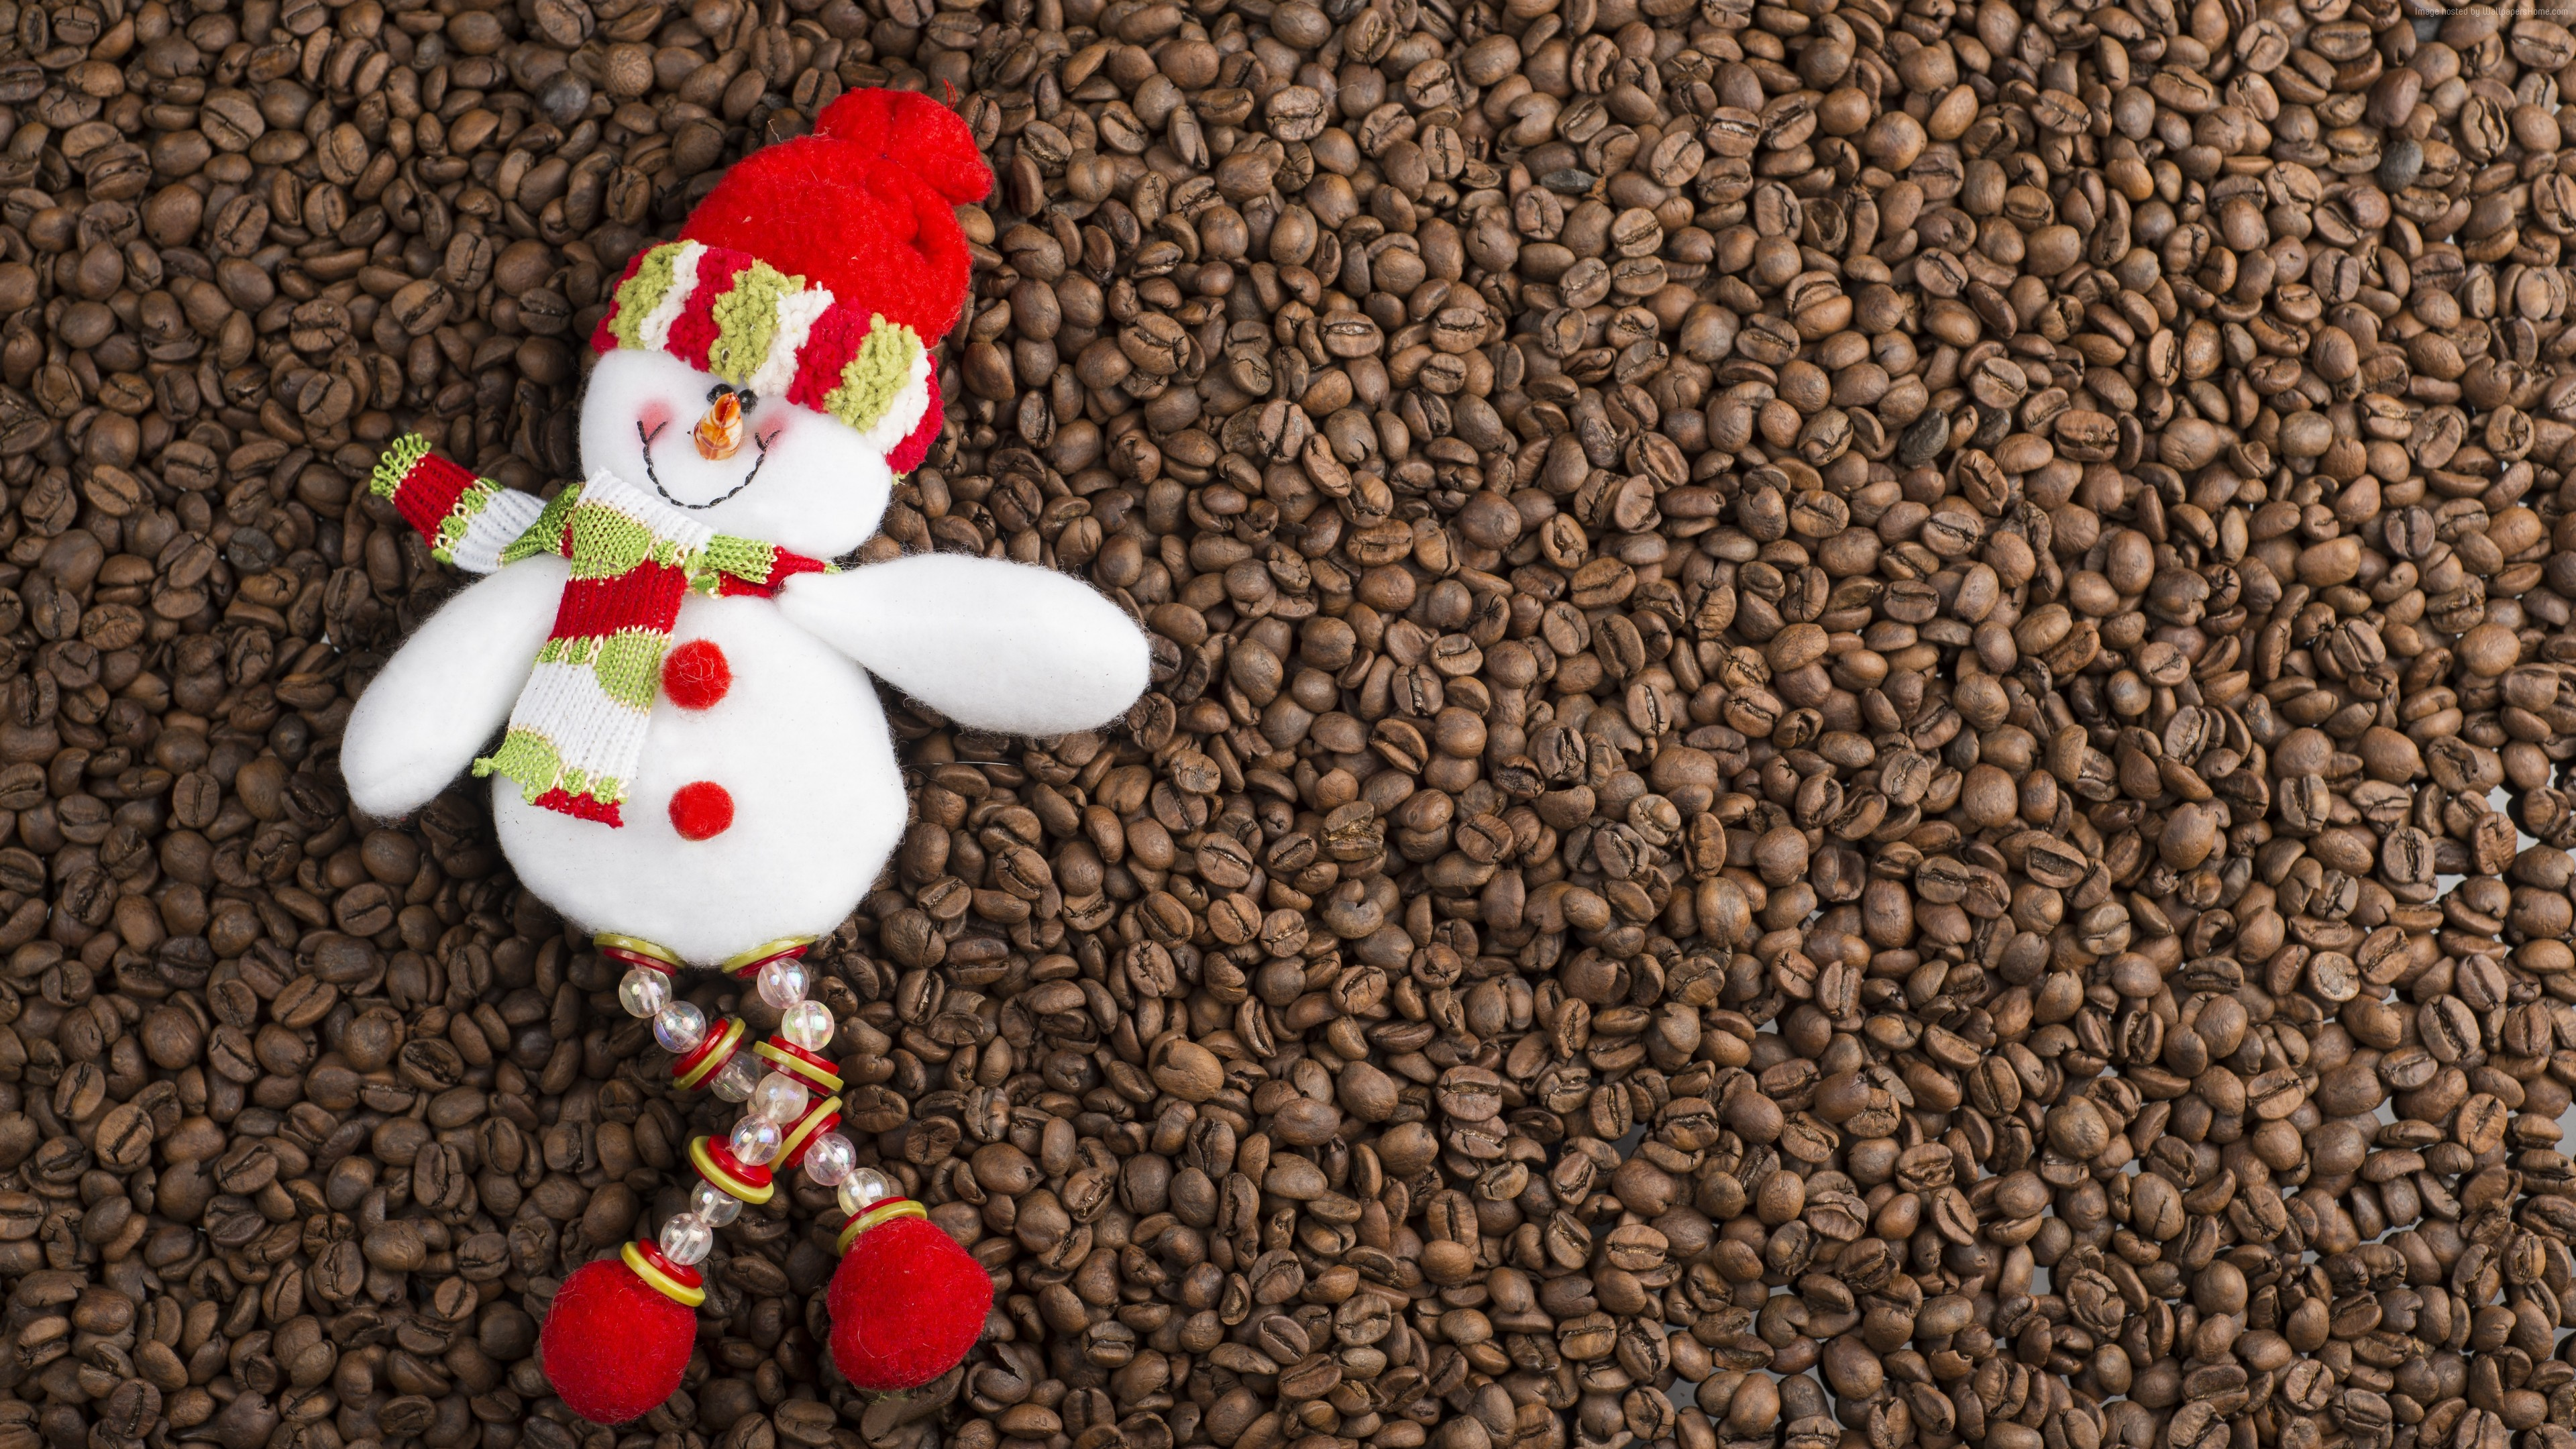 Stock Images Christmas, New Year, snowman, coffee, 5k, Stock Images